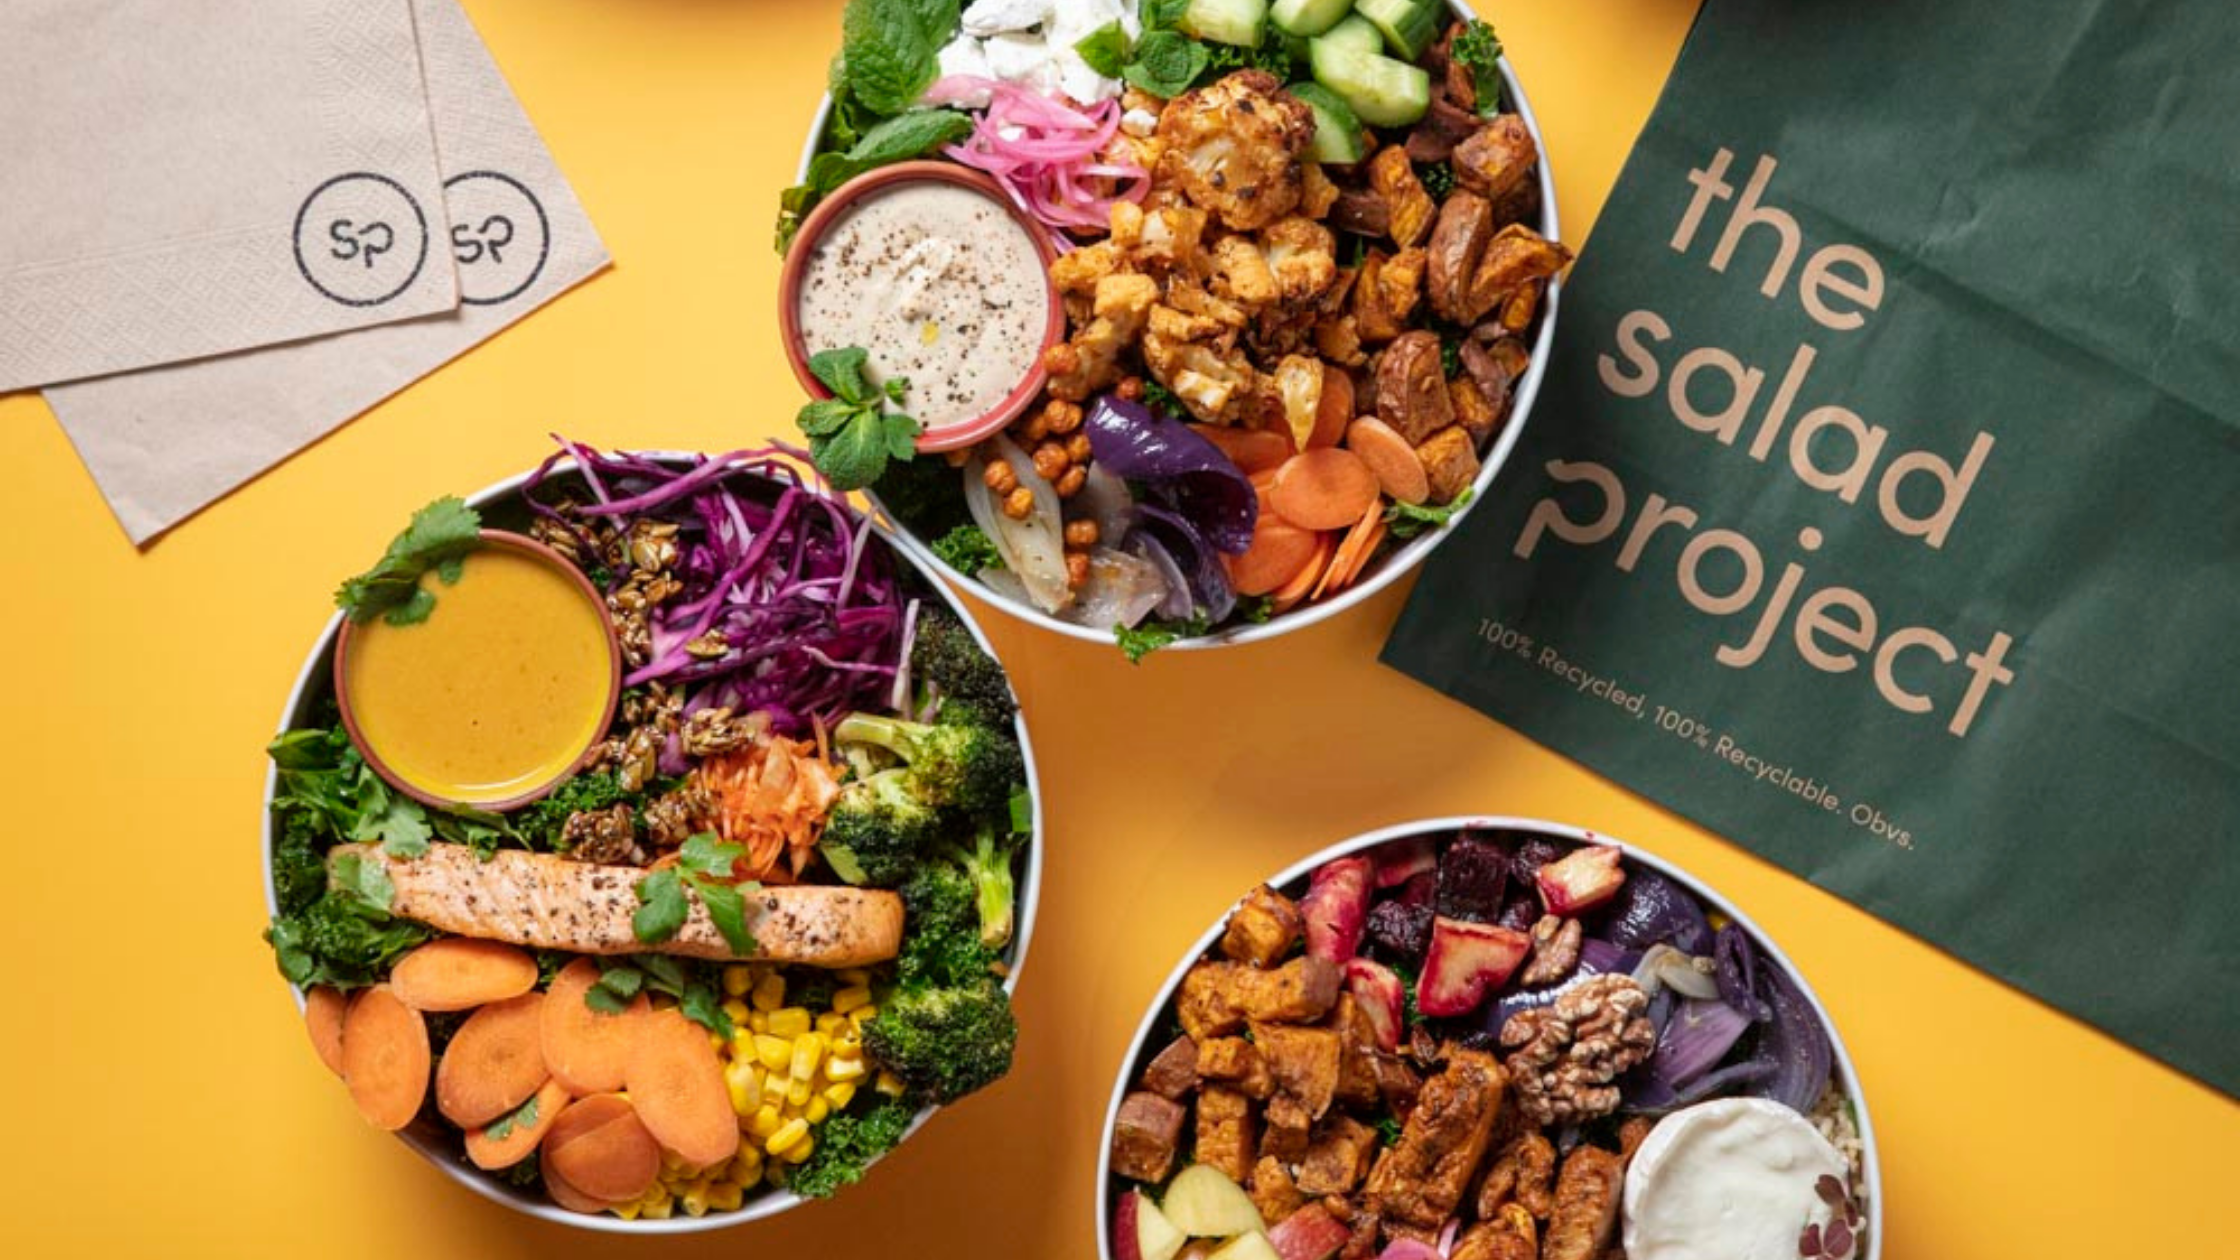 Variety of nutritious salads from The Salad Project